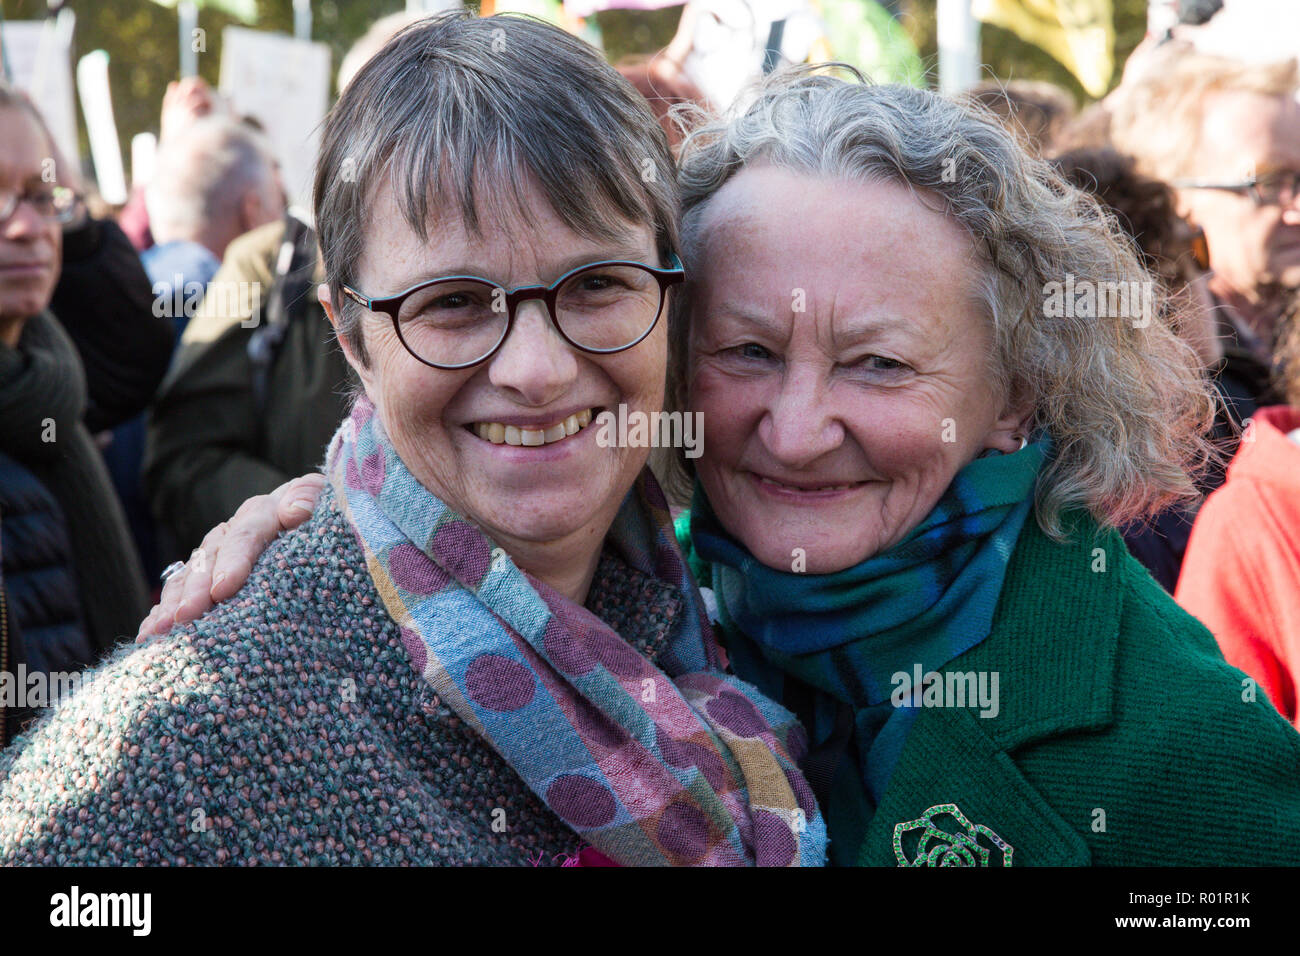 London, UK. 31st October, 2018. Molly Scott Cato, Green Party MEP, and Baroness Jenny Jones, Green Party peer, stand with environmental campaigners gathered in Parliament Square to make a formal declaration of non-violent rebellion against the British government for 'criminal inaction in the face of climate change catastrophe and ecological collapse'. Credit: Mark Kerrison/Alamy Live News - Stock Image